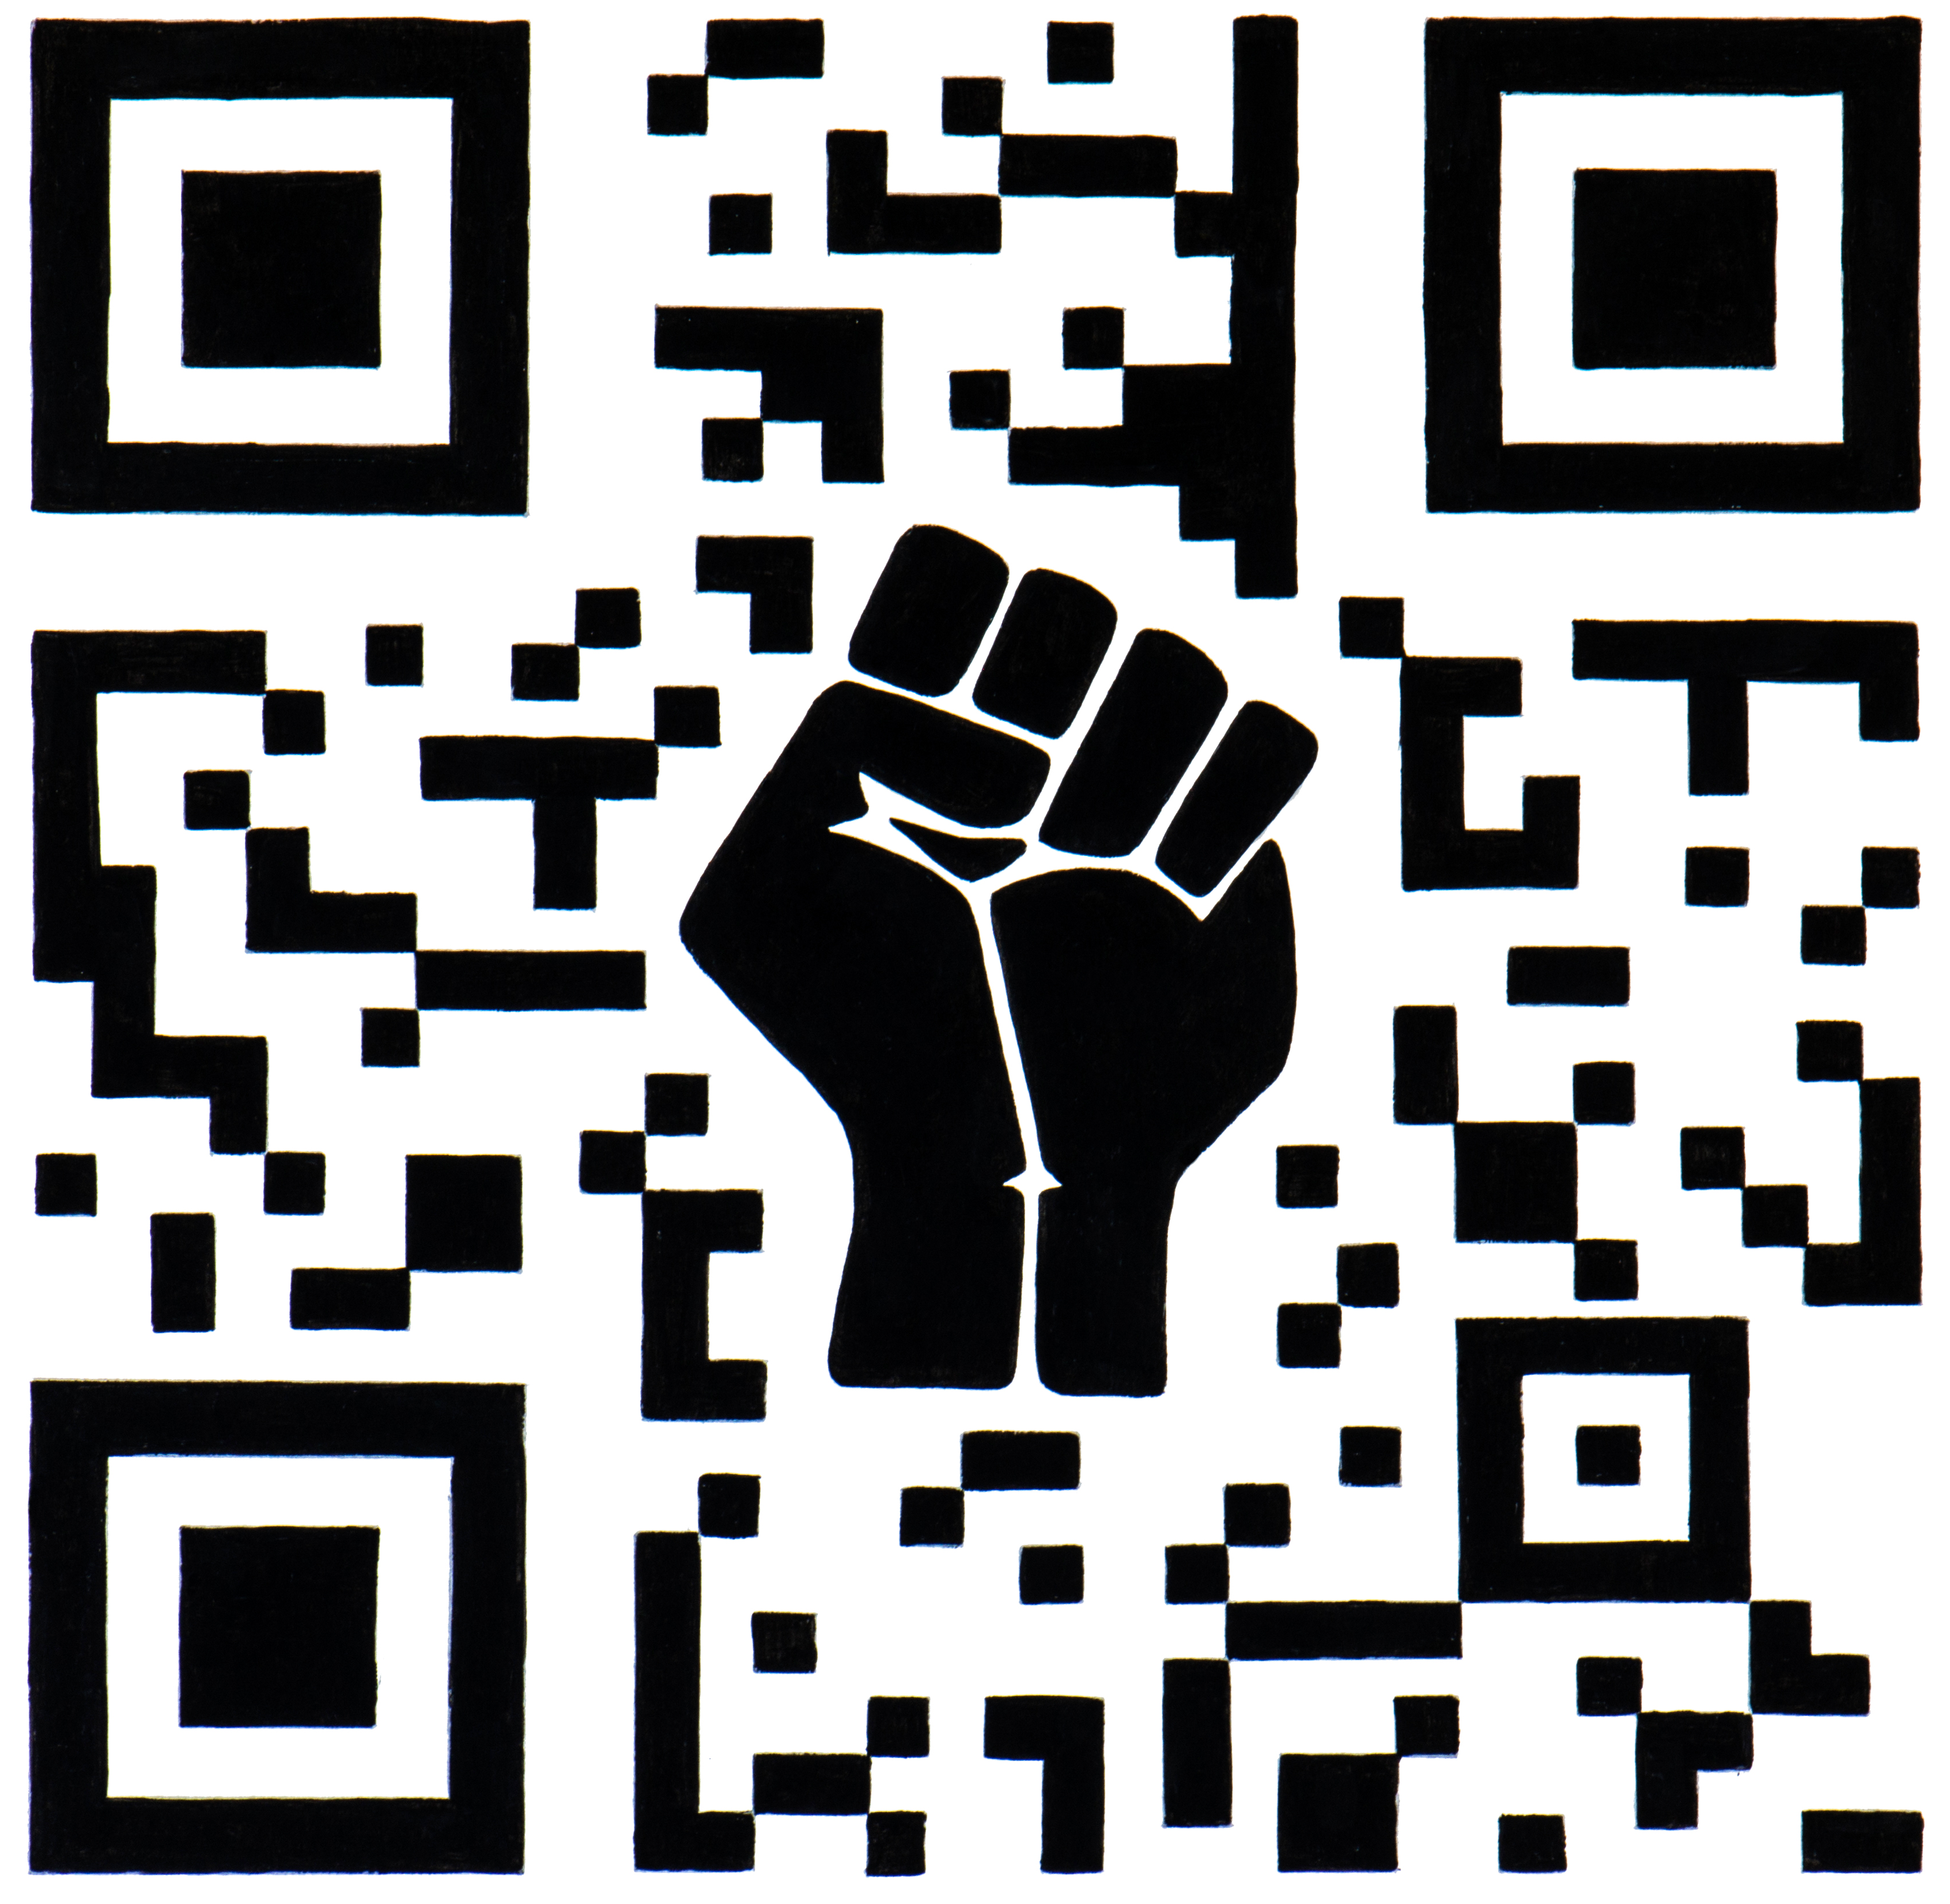 QR Code illustration with BLM fist